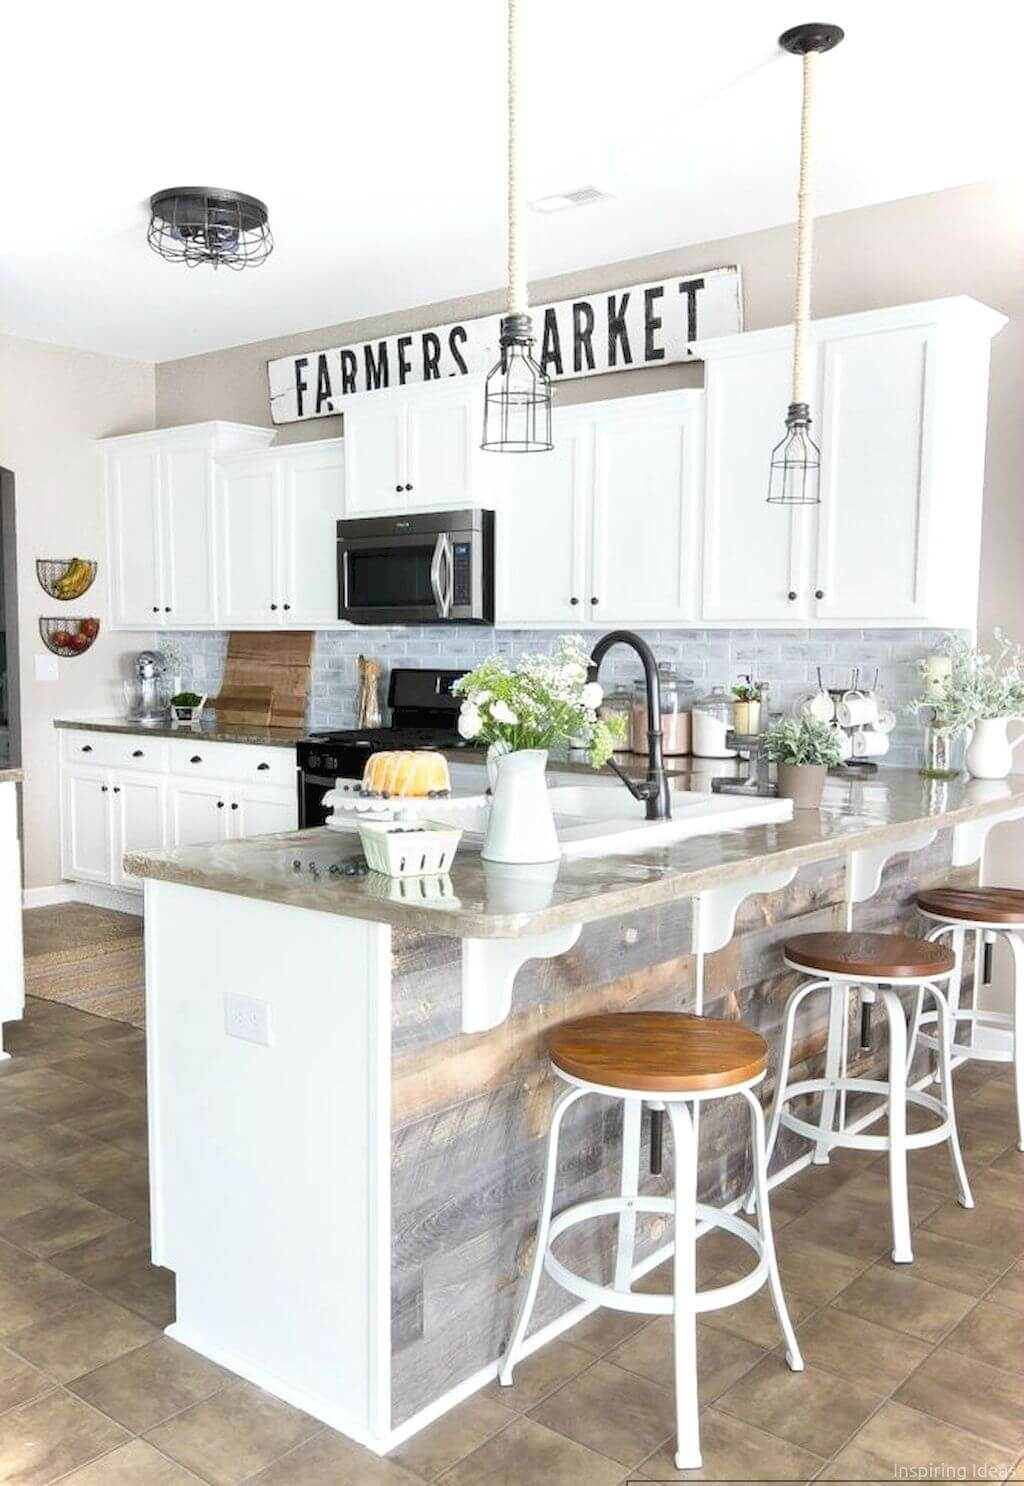 Farmhouse Kitchen Decor: 35 Best Farmhouse Kitchen Cabinet Ideas And Designs For 2019